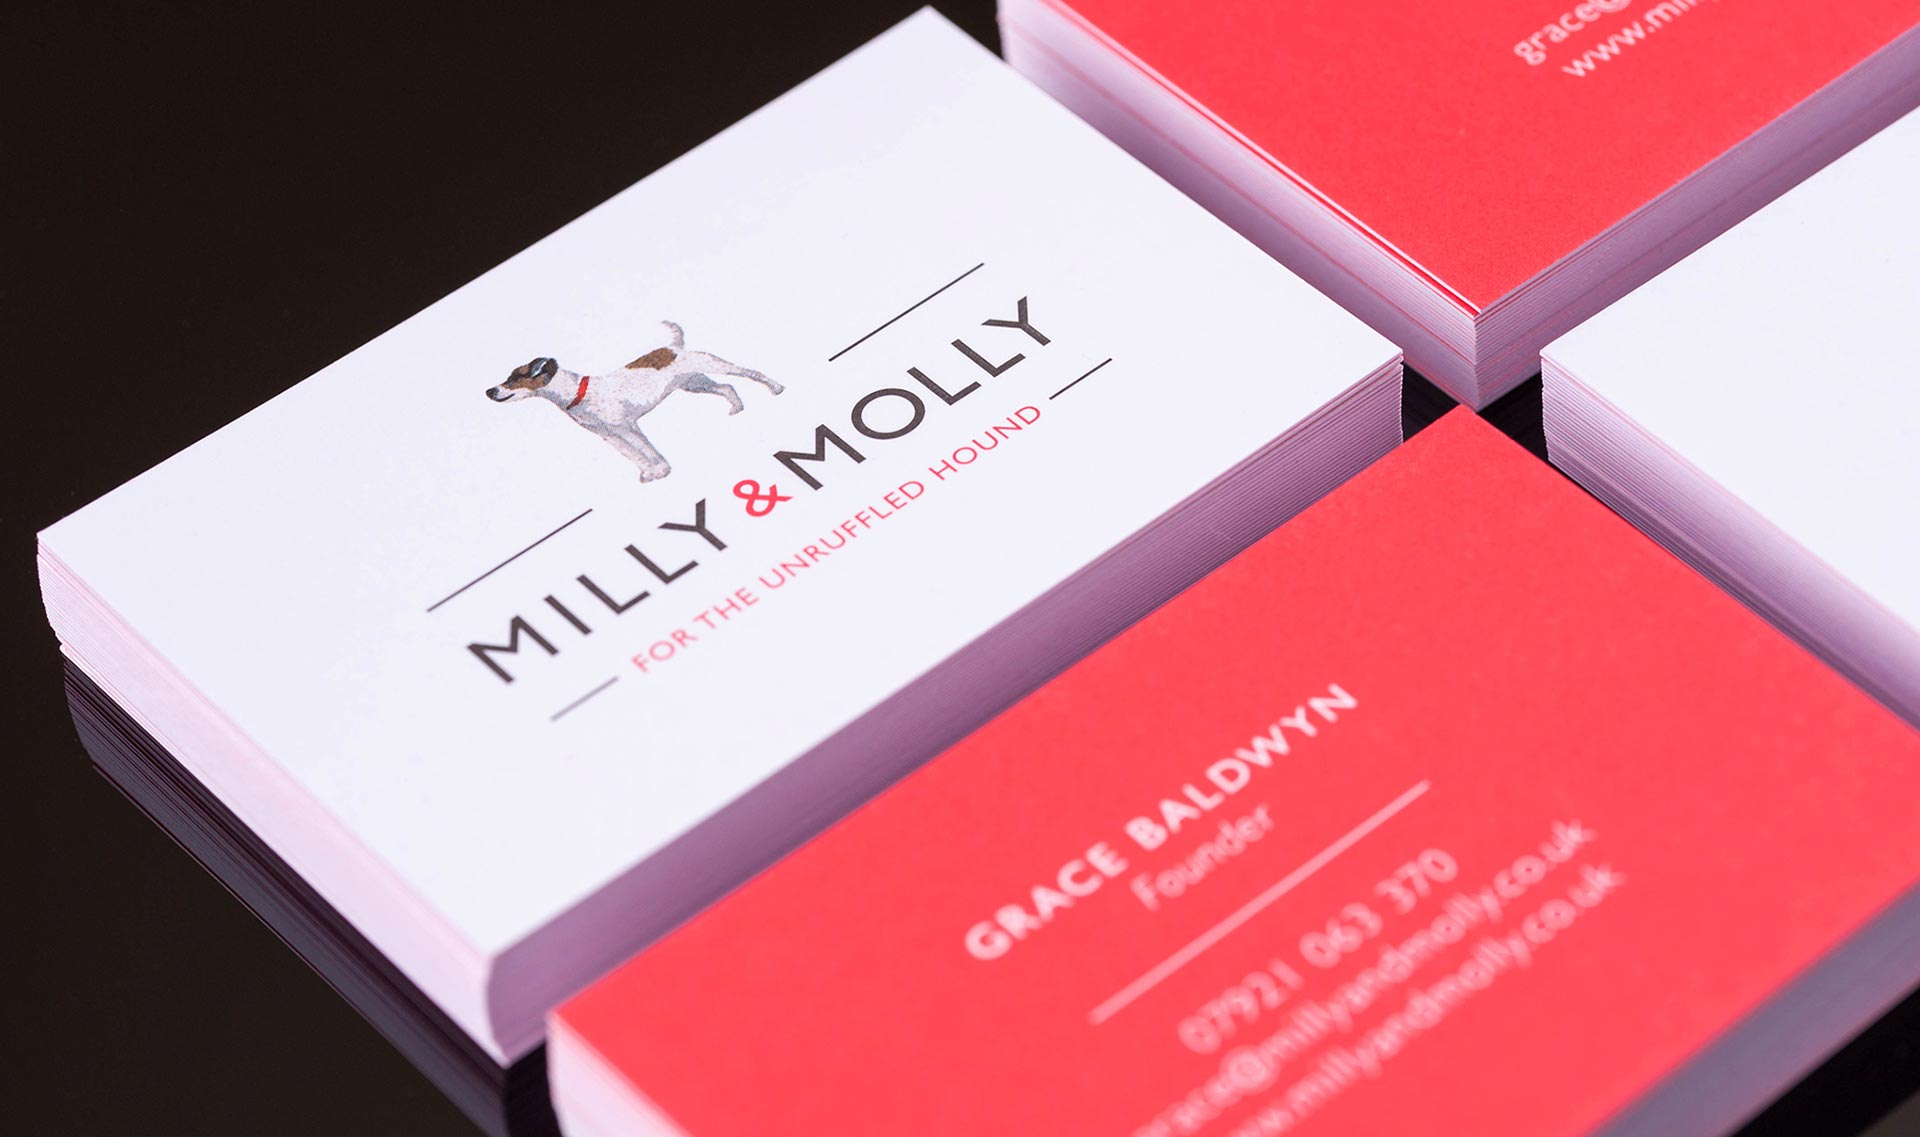 Brand Identity and packaging designed for the brand MILLY & MOLLY. Design company - Flipflop Design